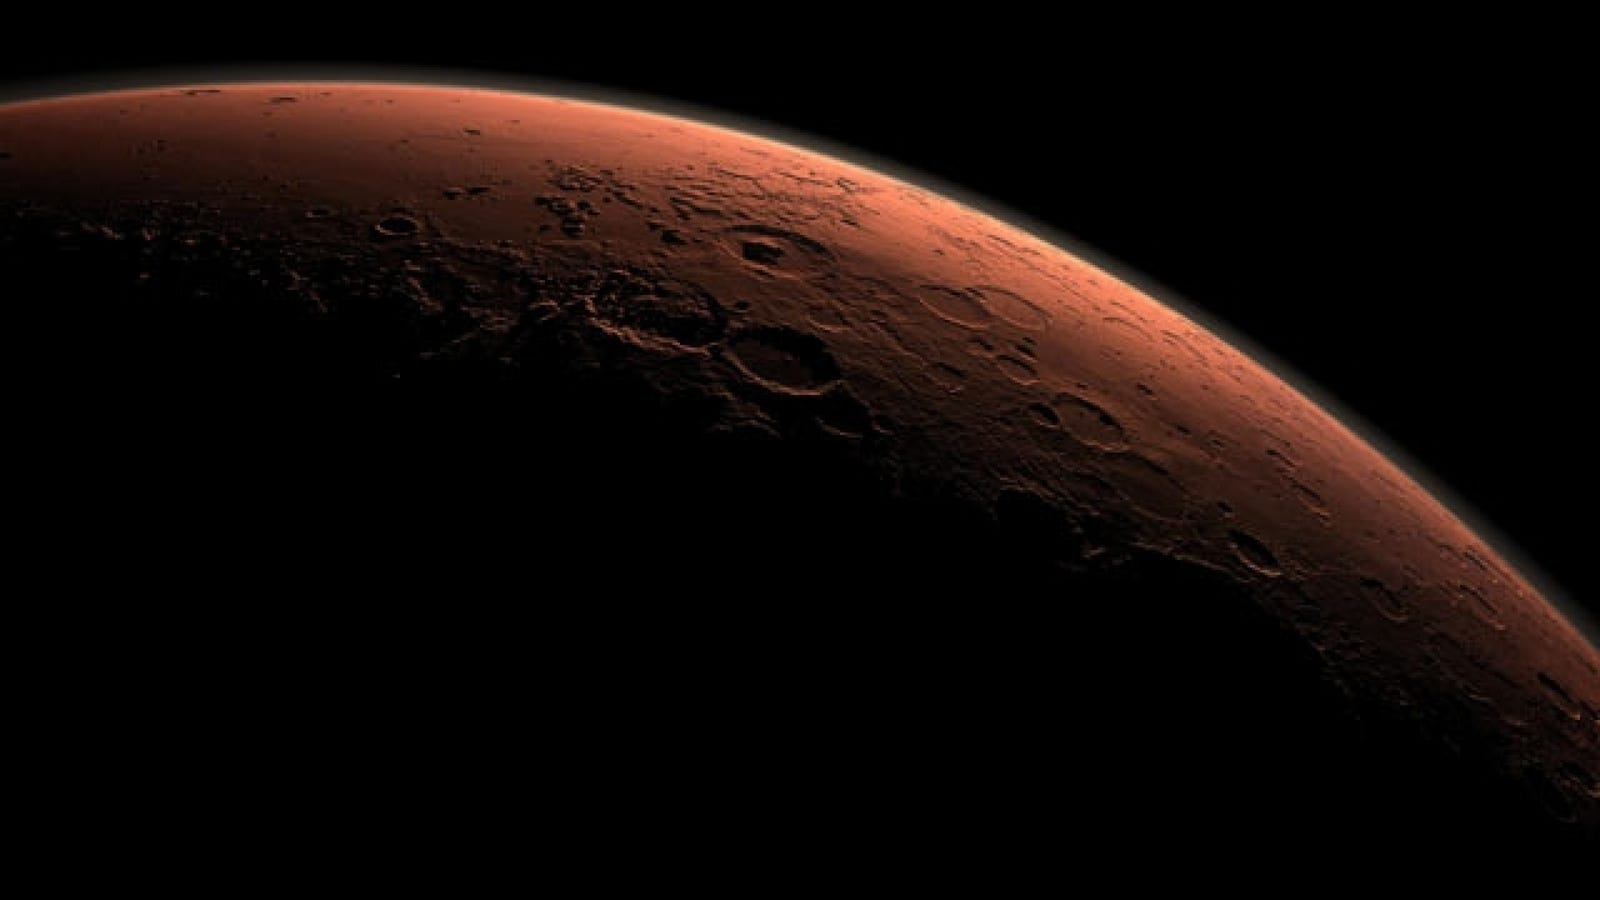 We Should Deliberately Contaminate Mars With Our Microbes, Controversial Study Argues